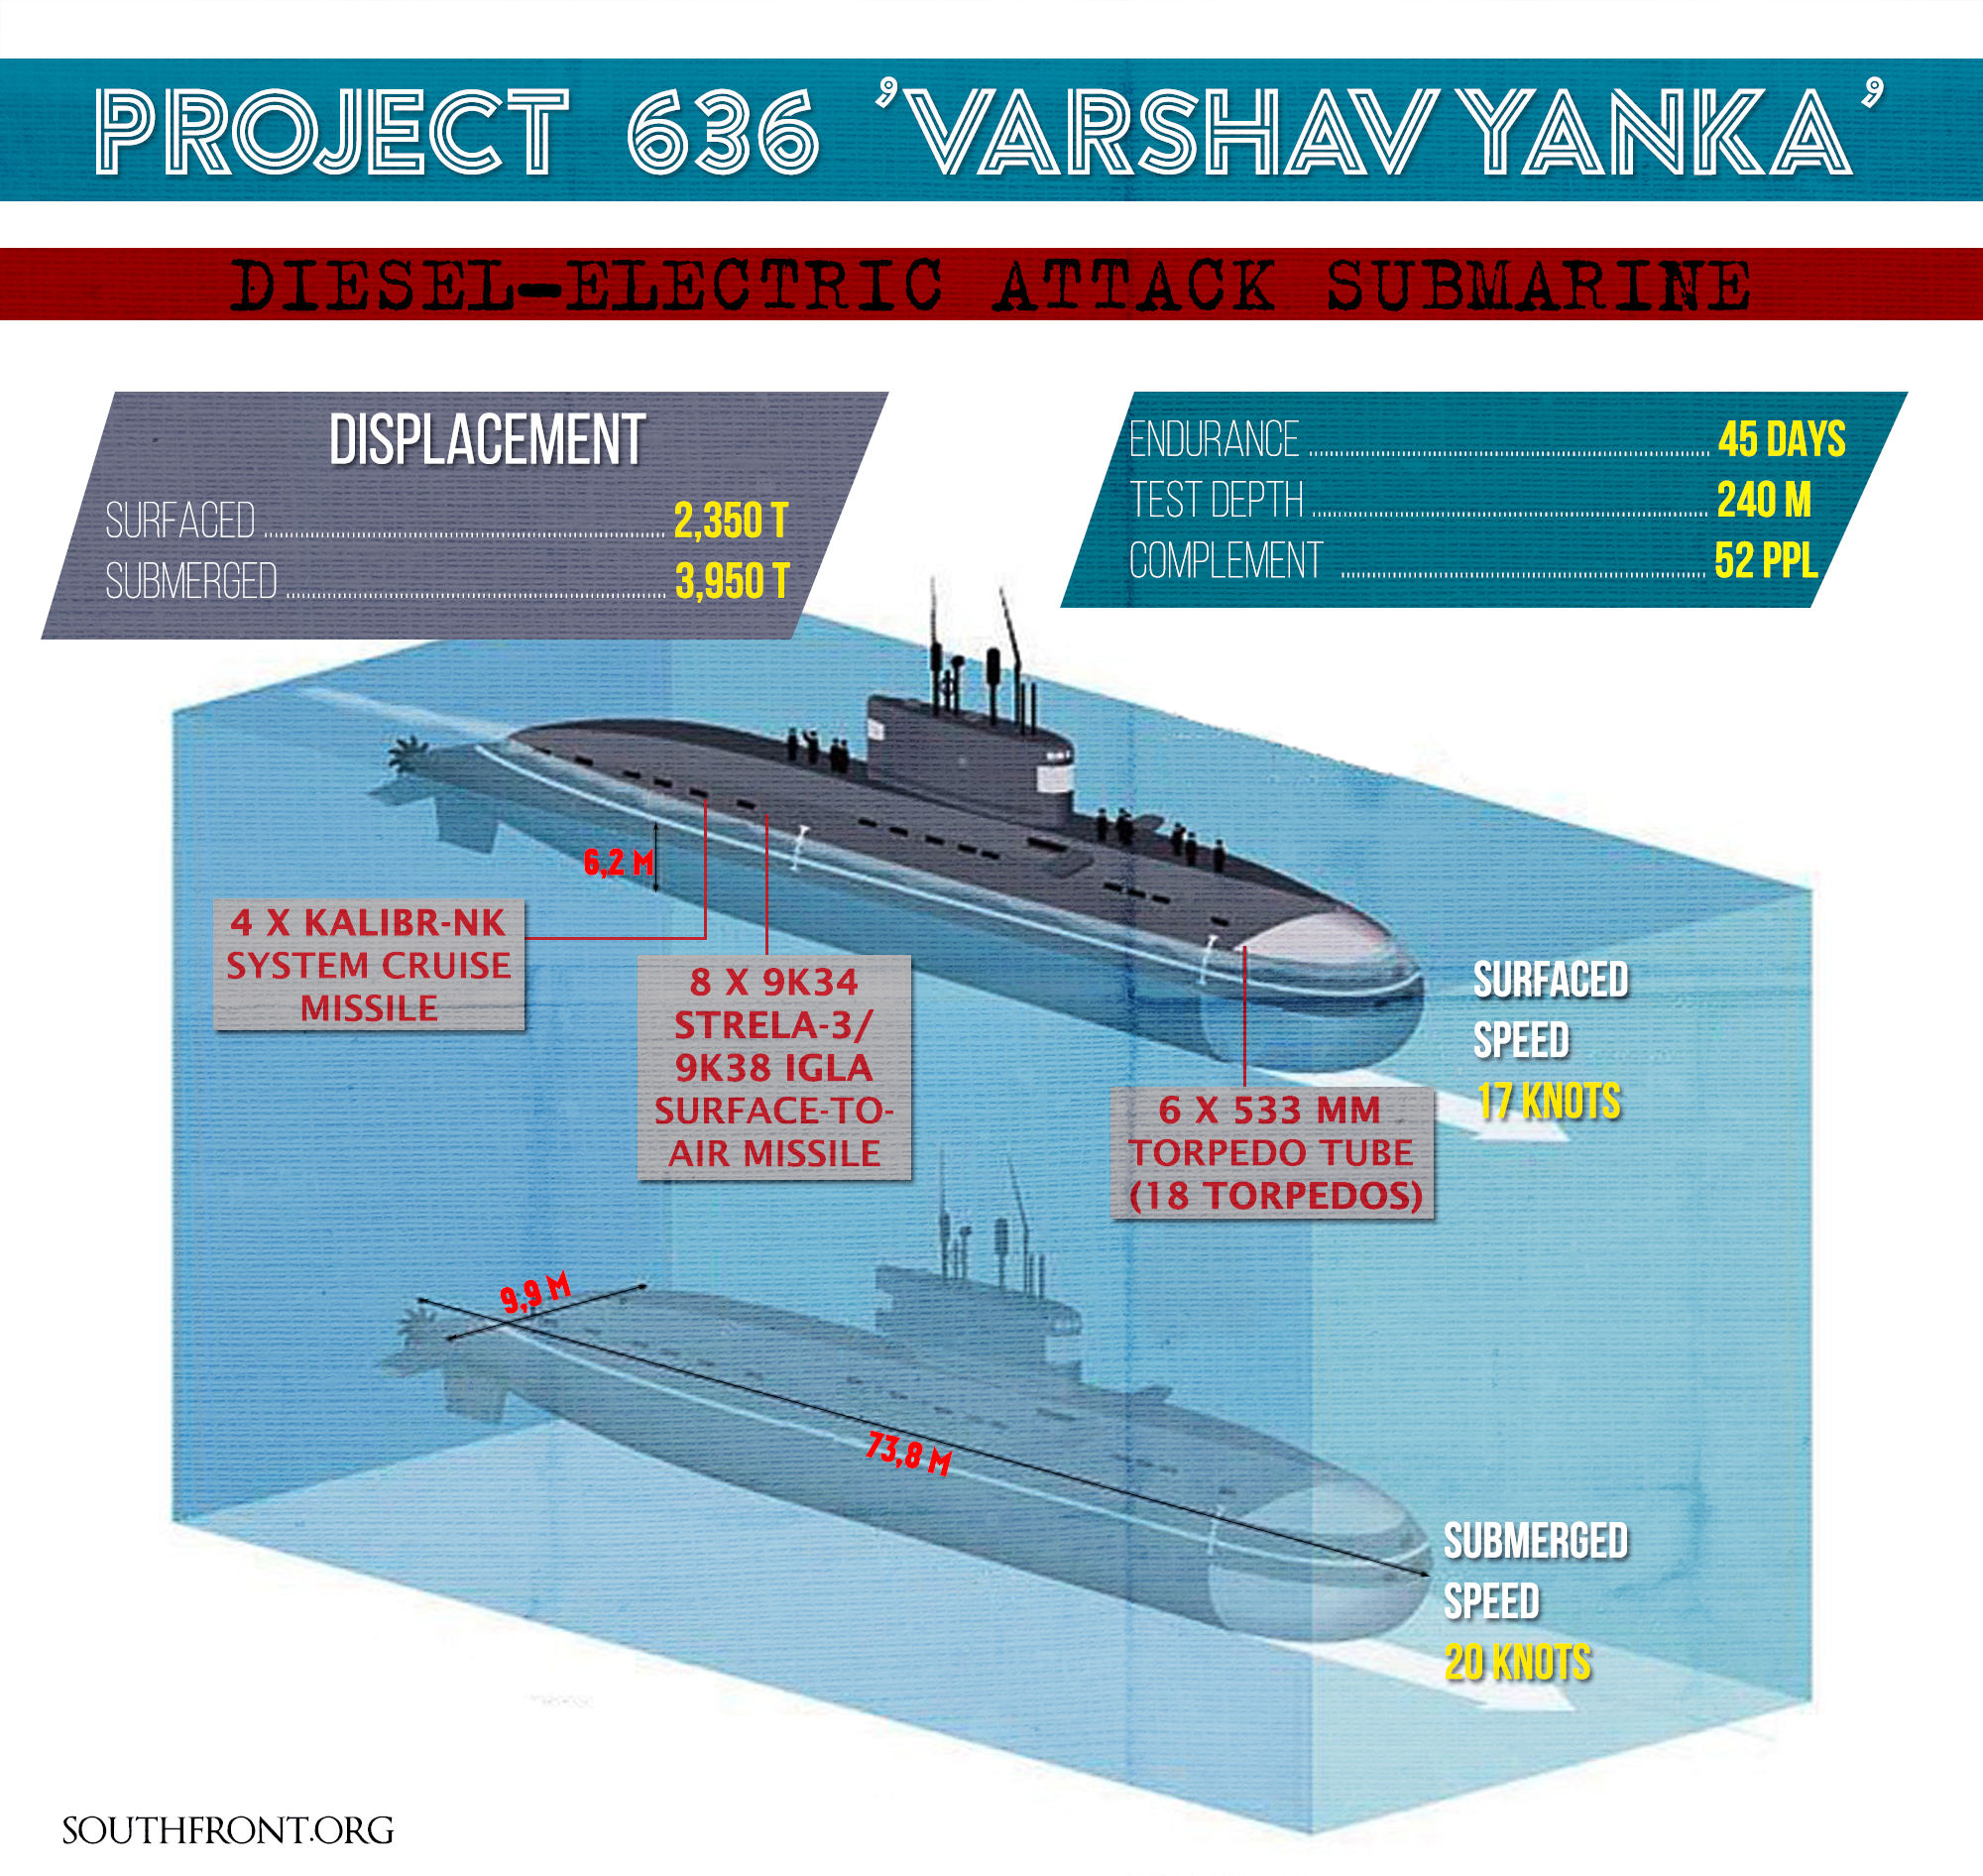 Russia's Sub Armed with Kalibr Cruise Missiles: Project 636 Varshavyanka (Infographics)